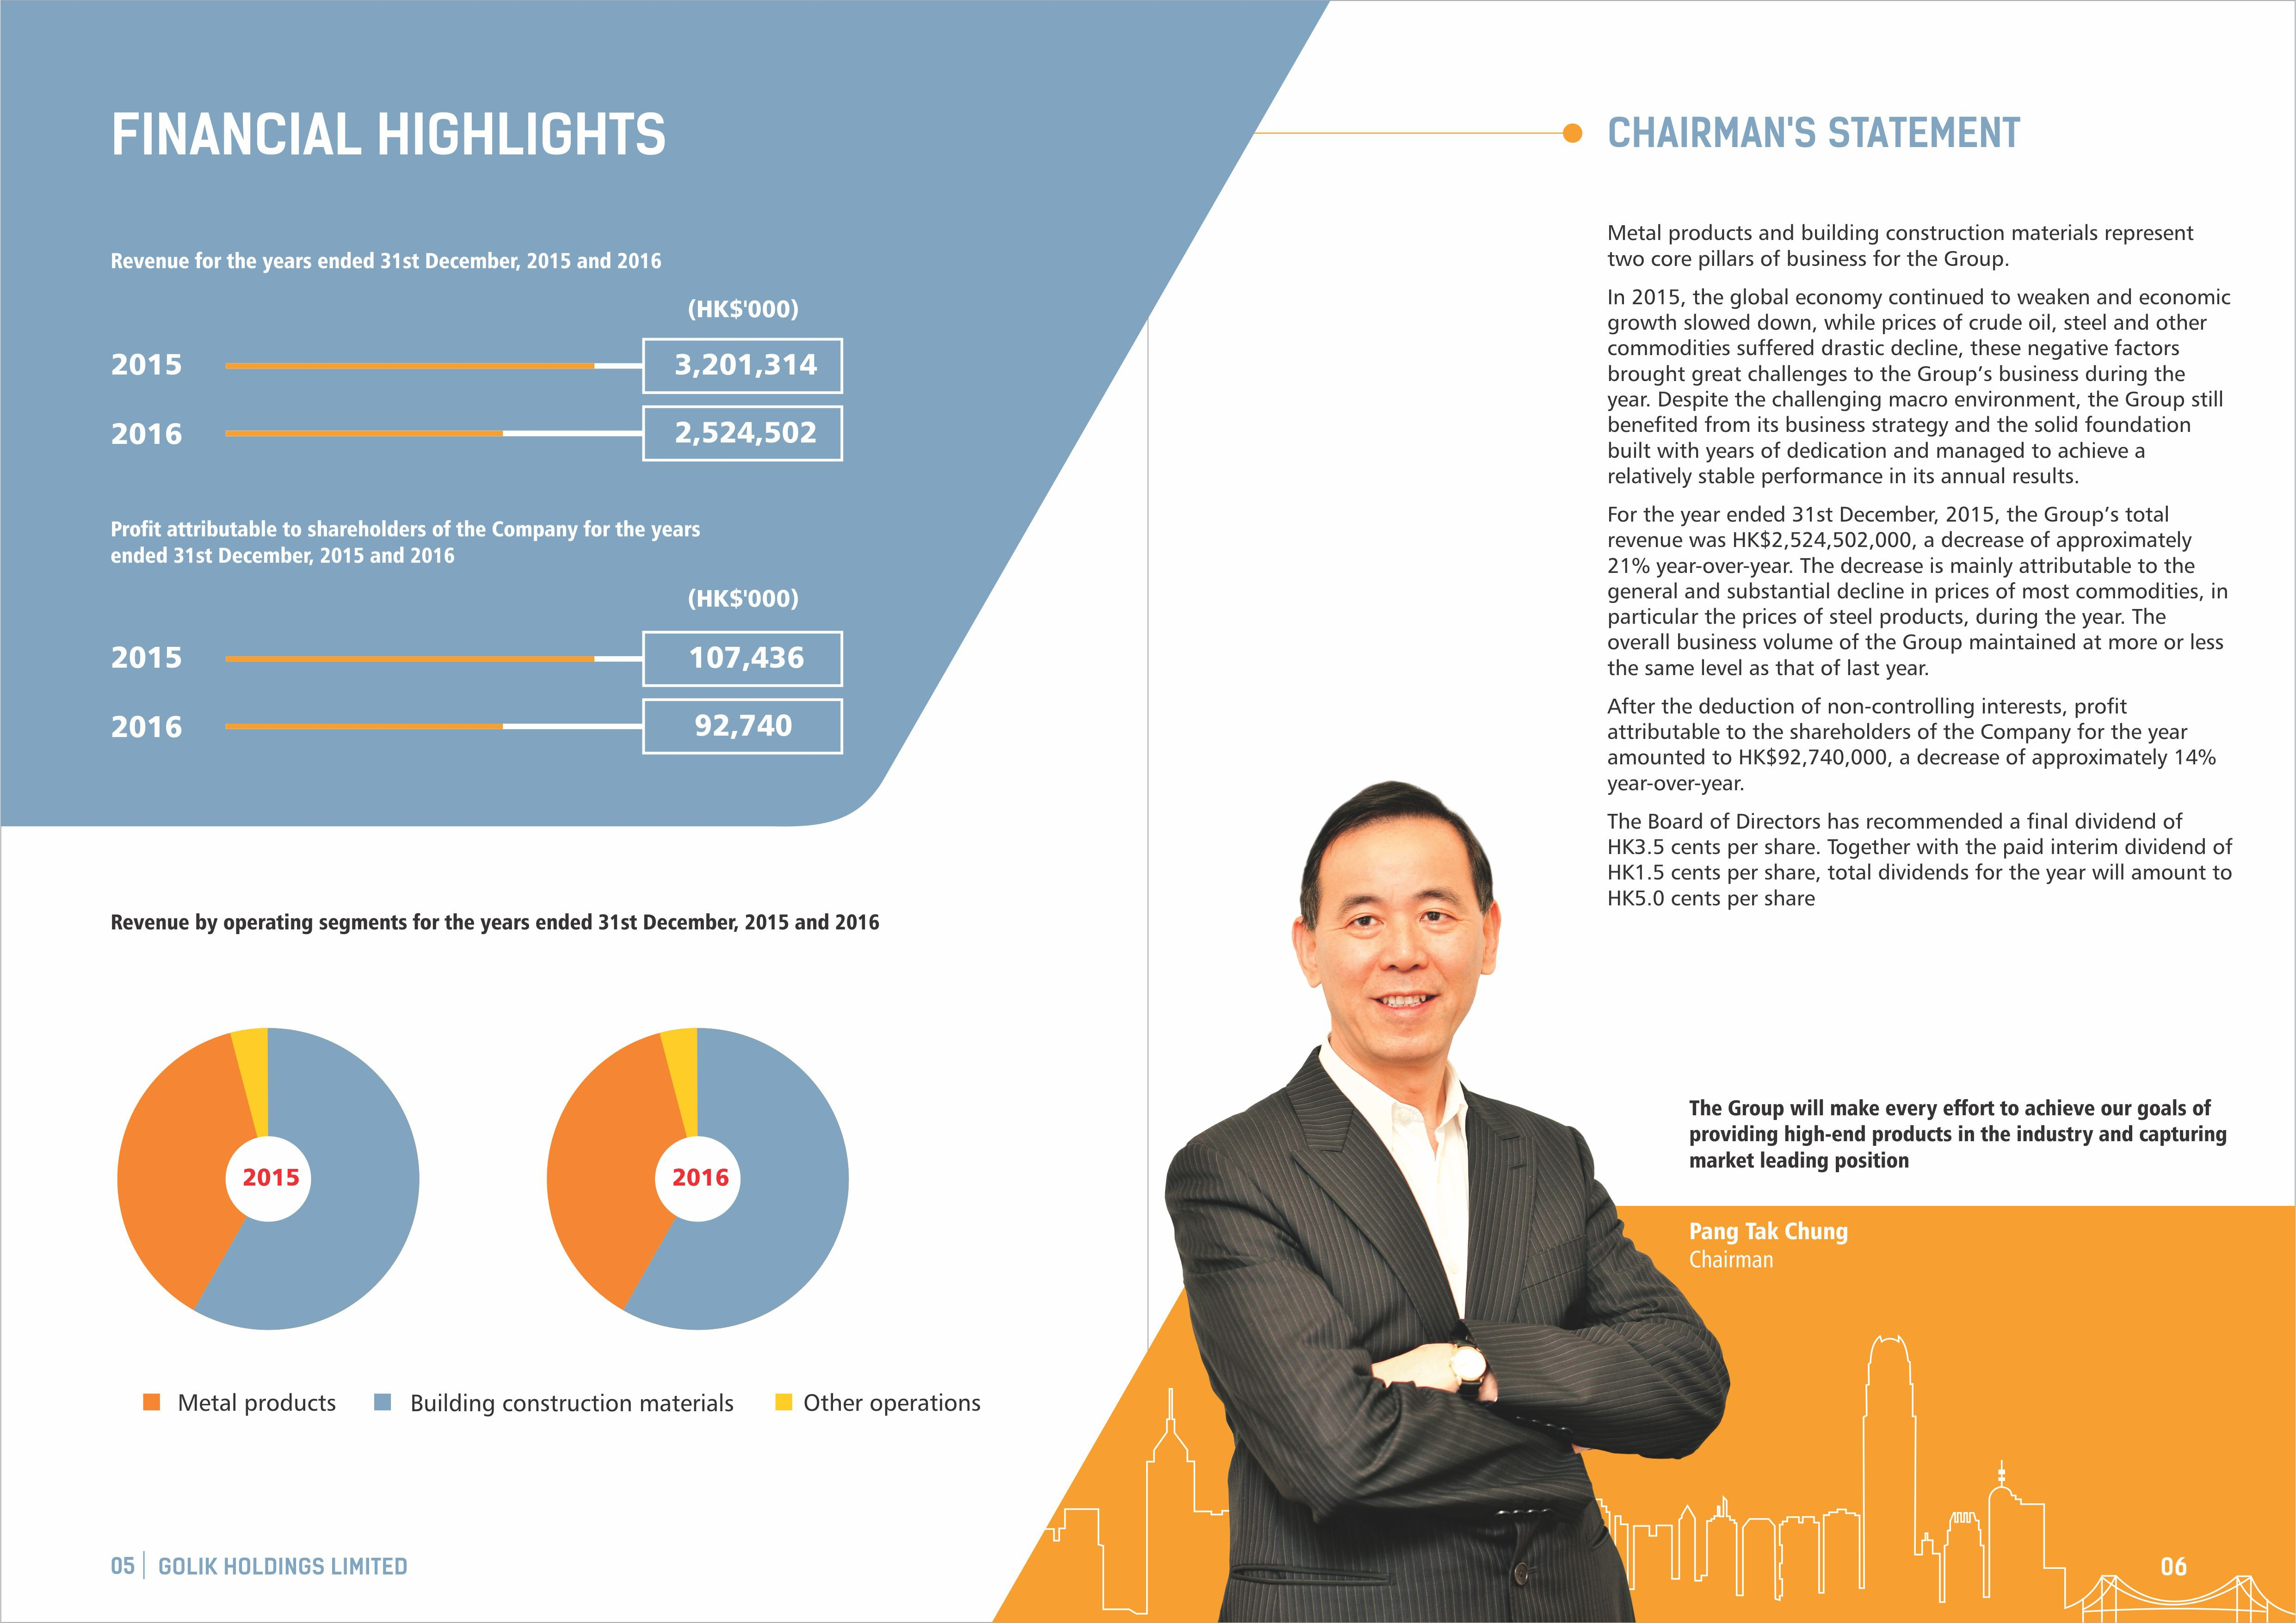 Golik financial report - celebrates 40 years of success and beyond!